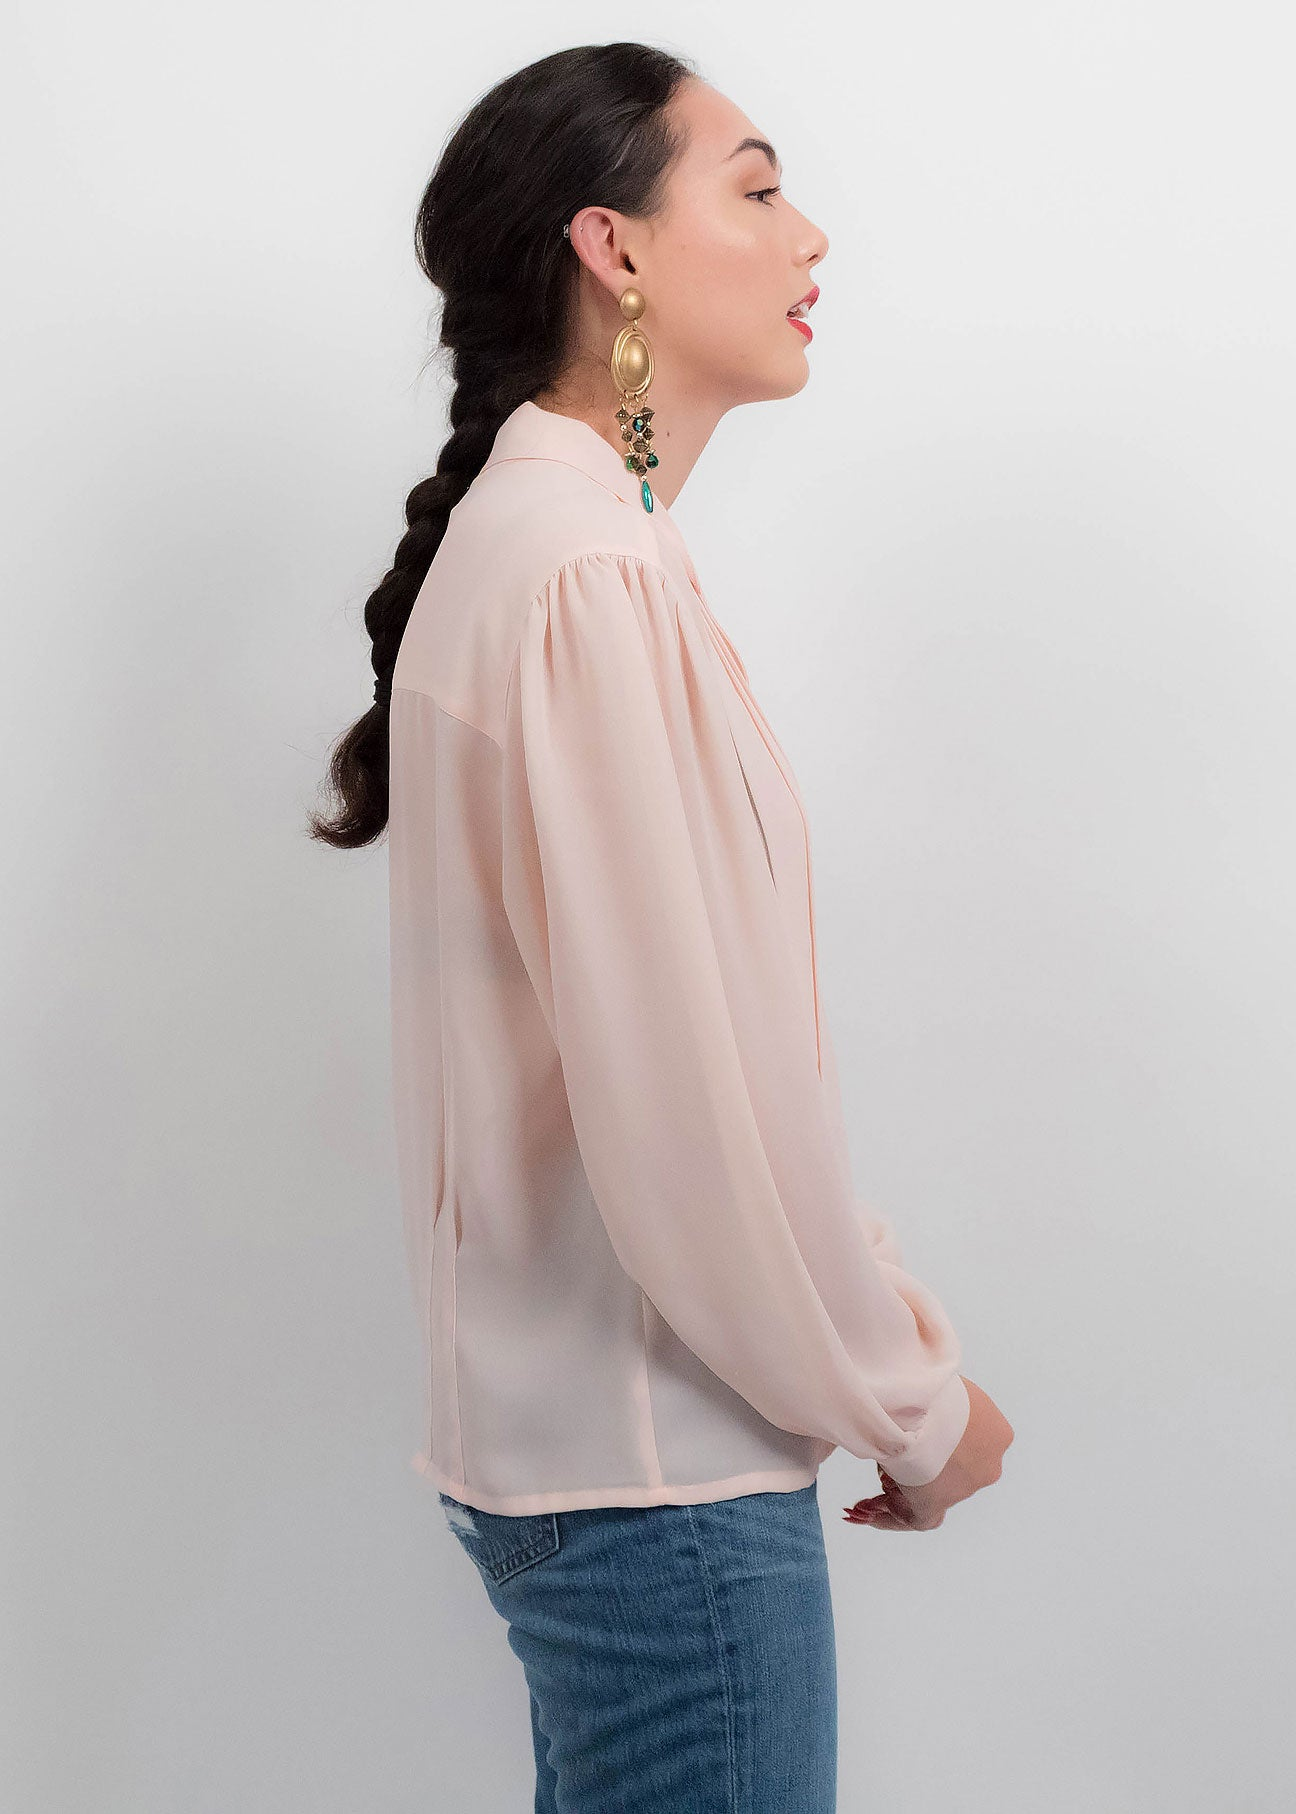 80s Peach Sheer Blouse